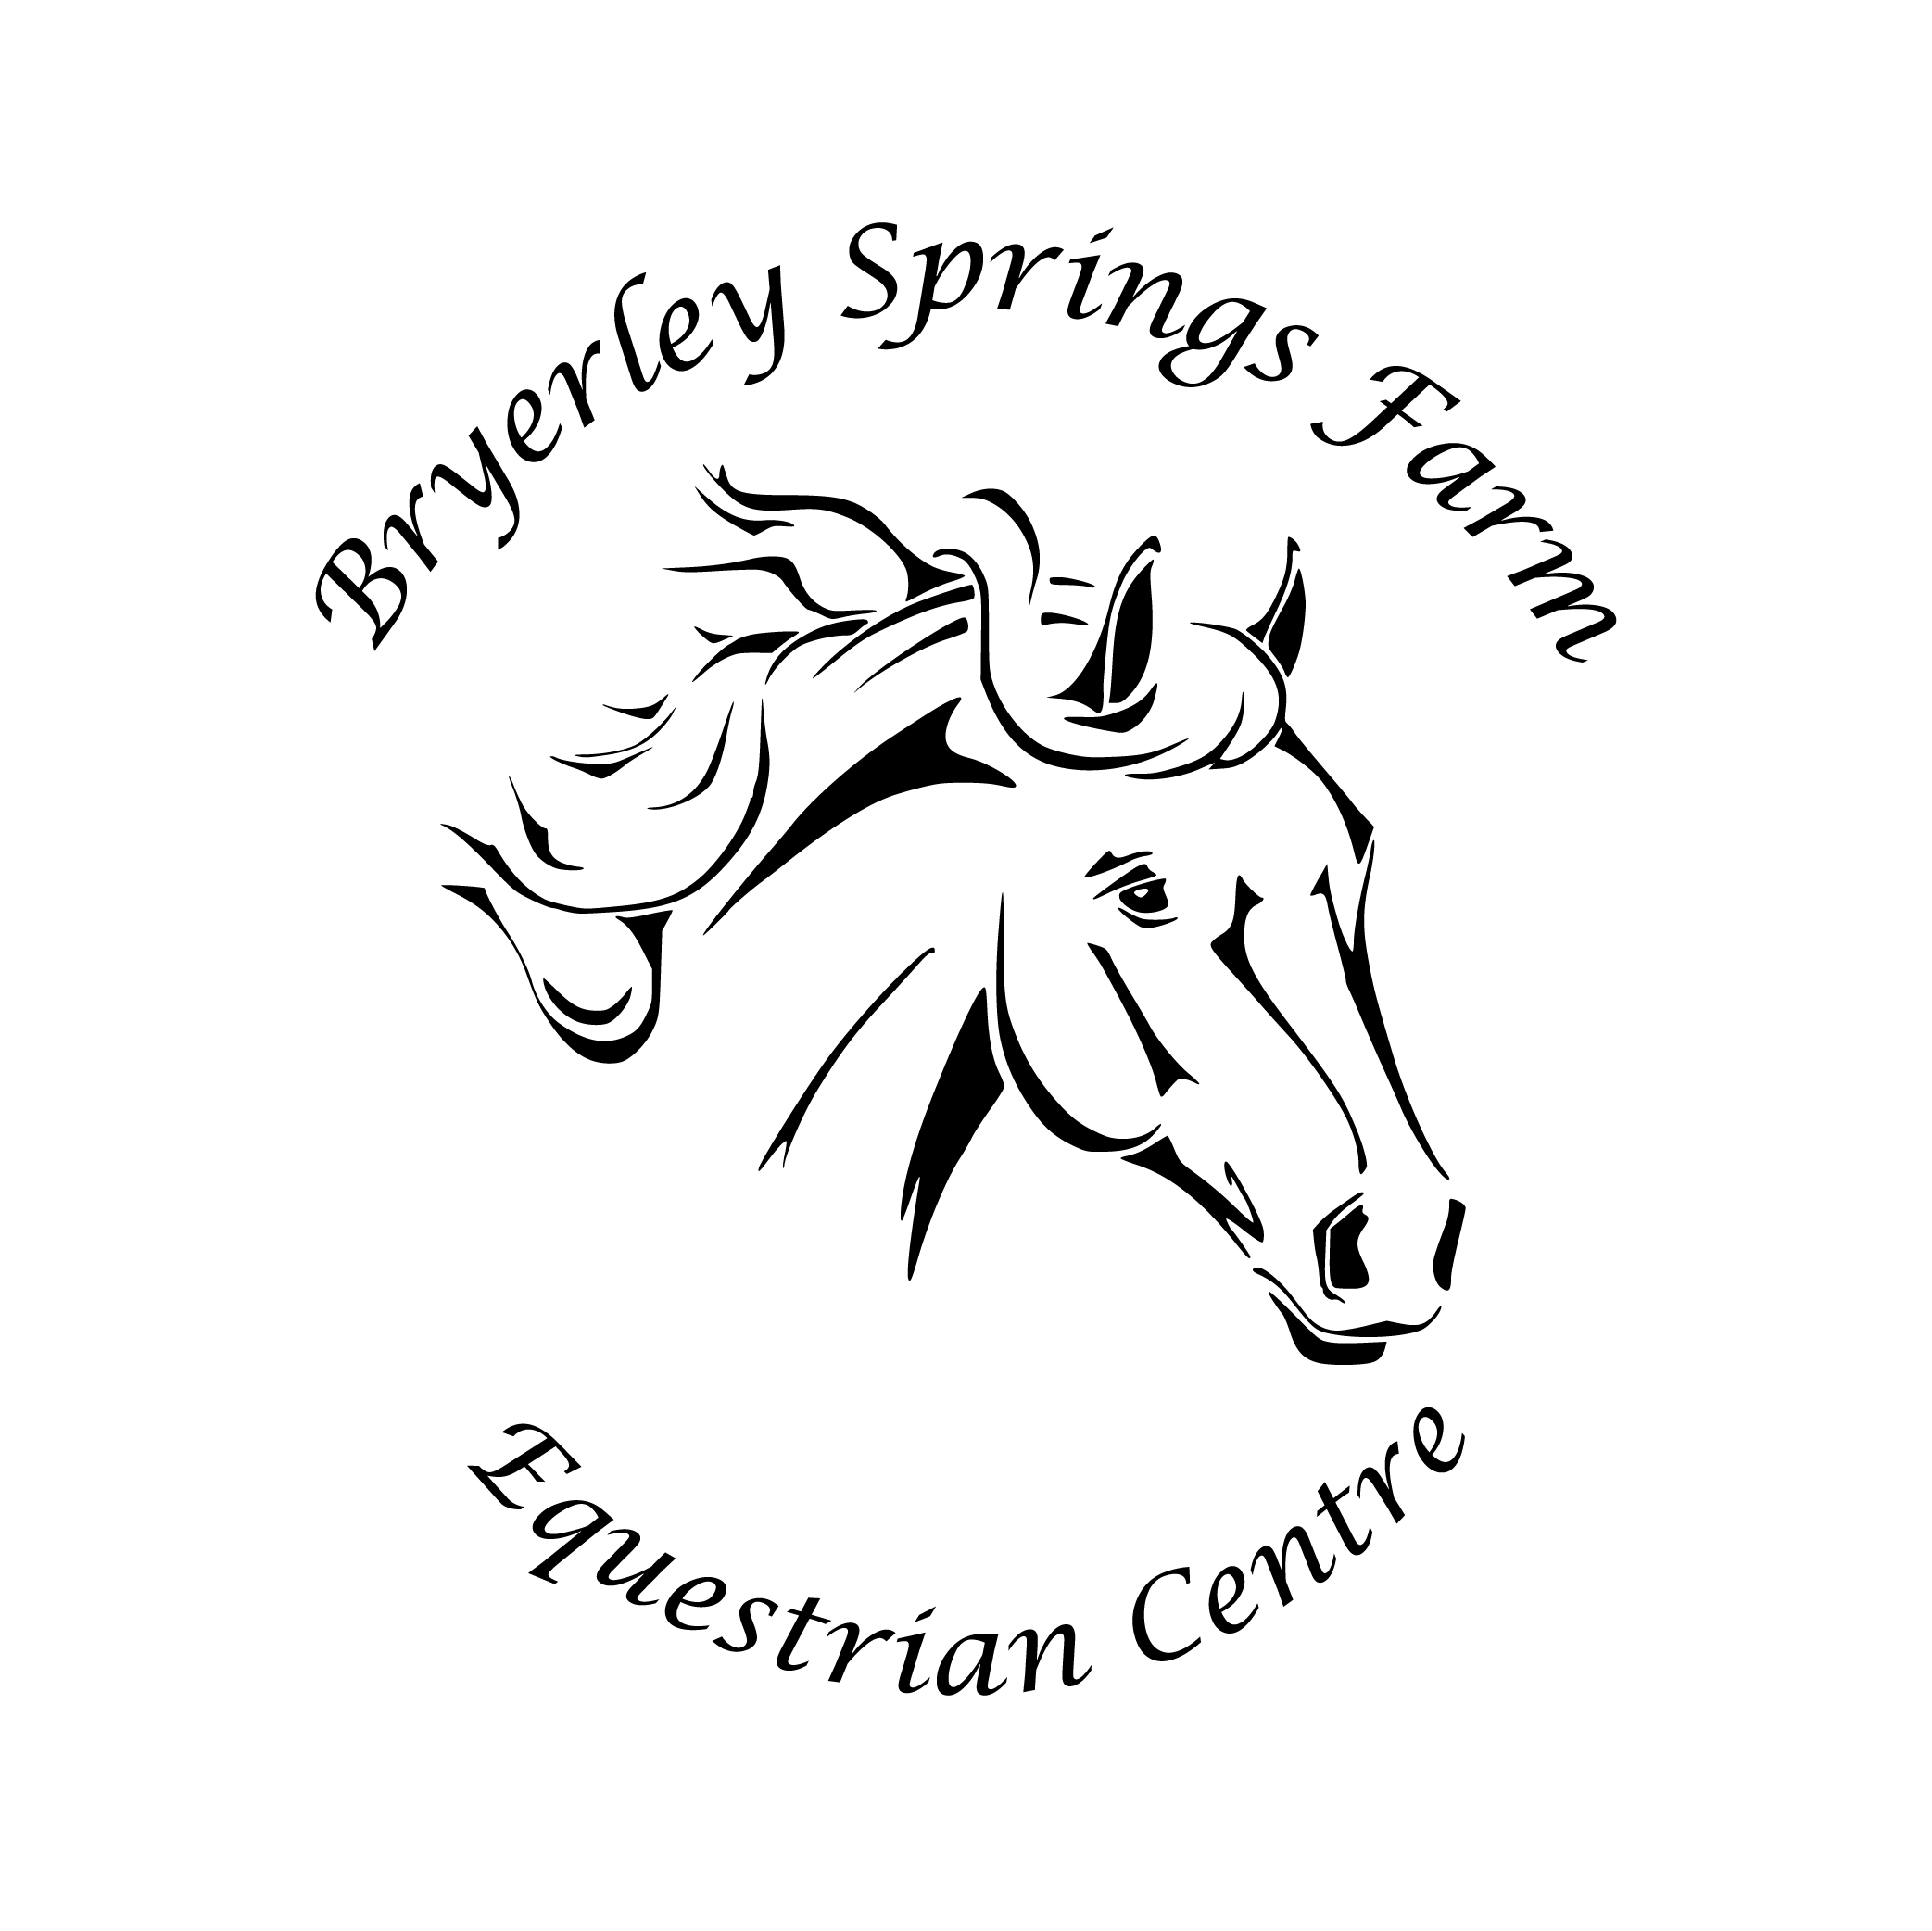 This is an image showing Bryerley Springs Equestrian Centre logo